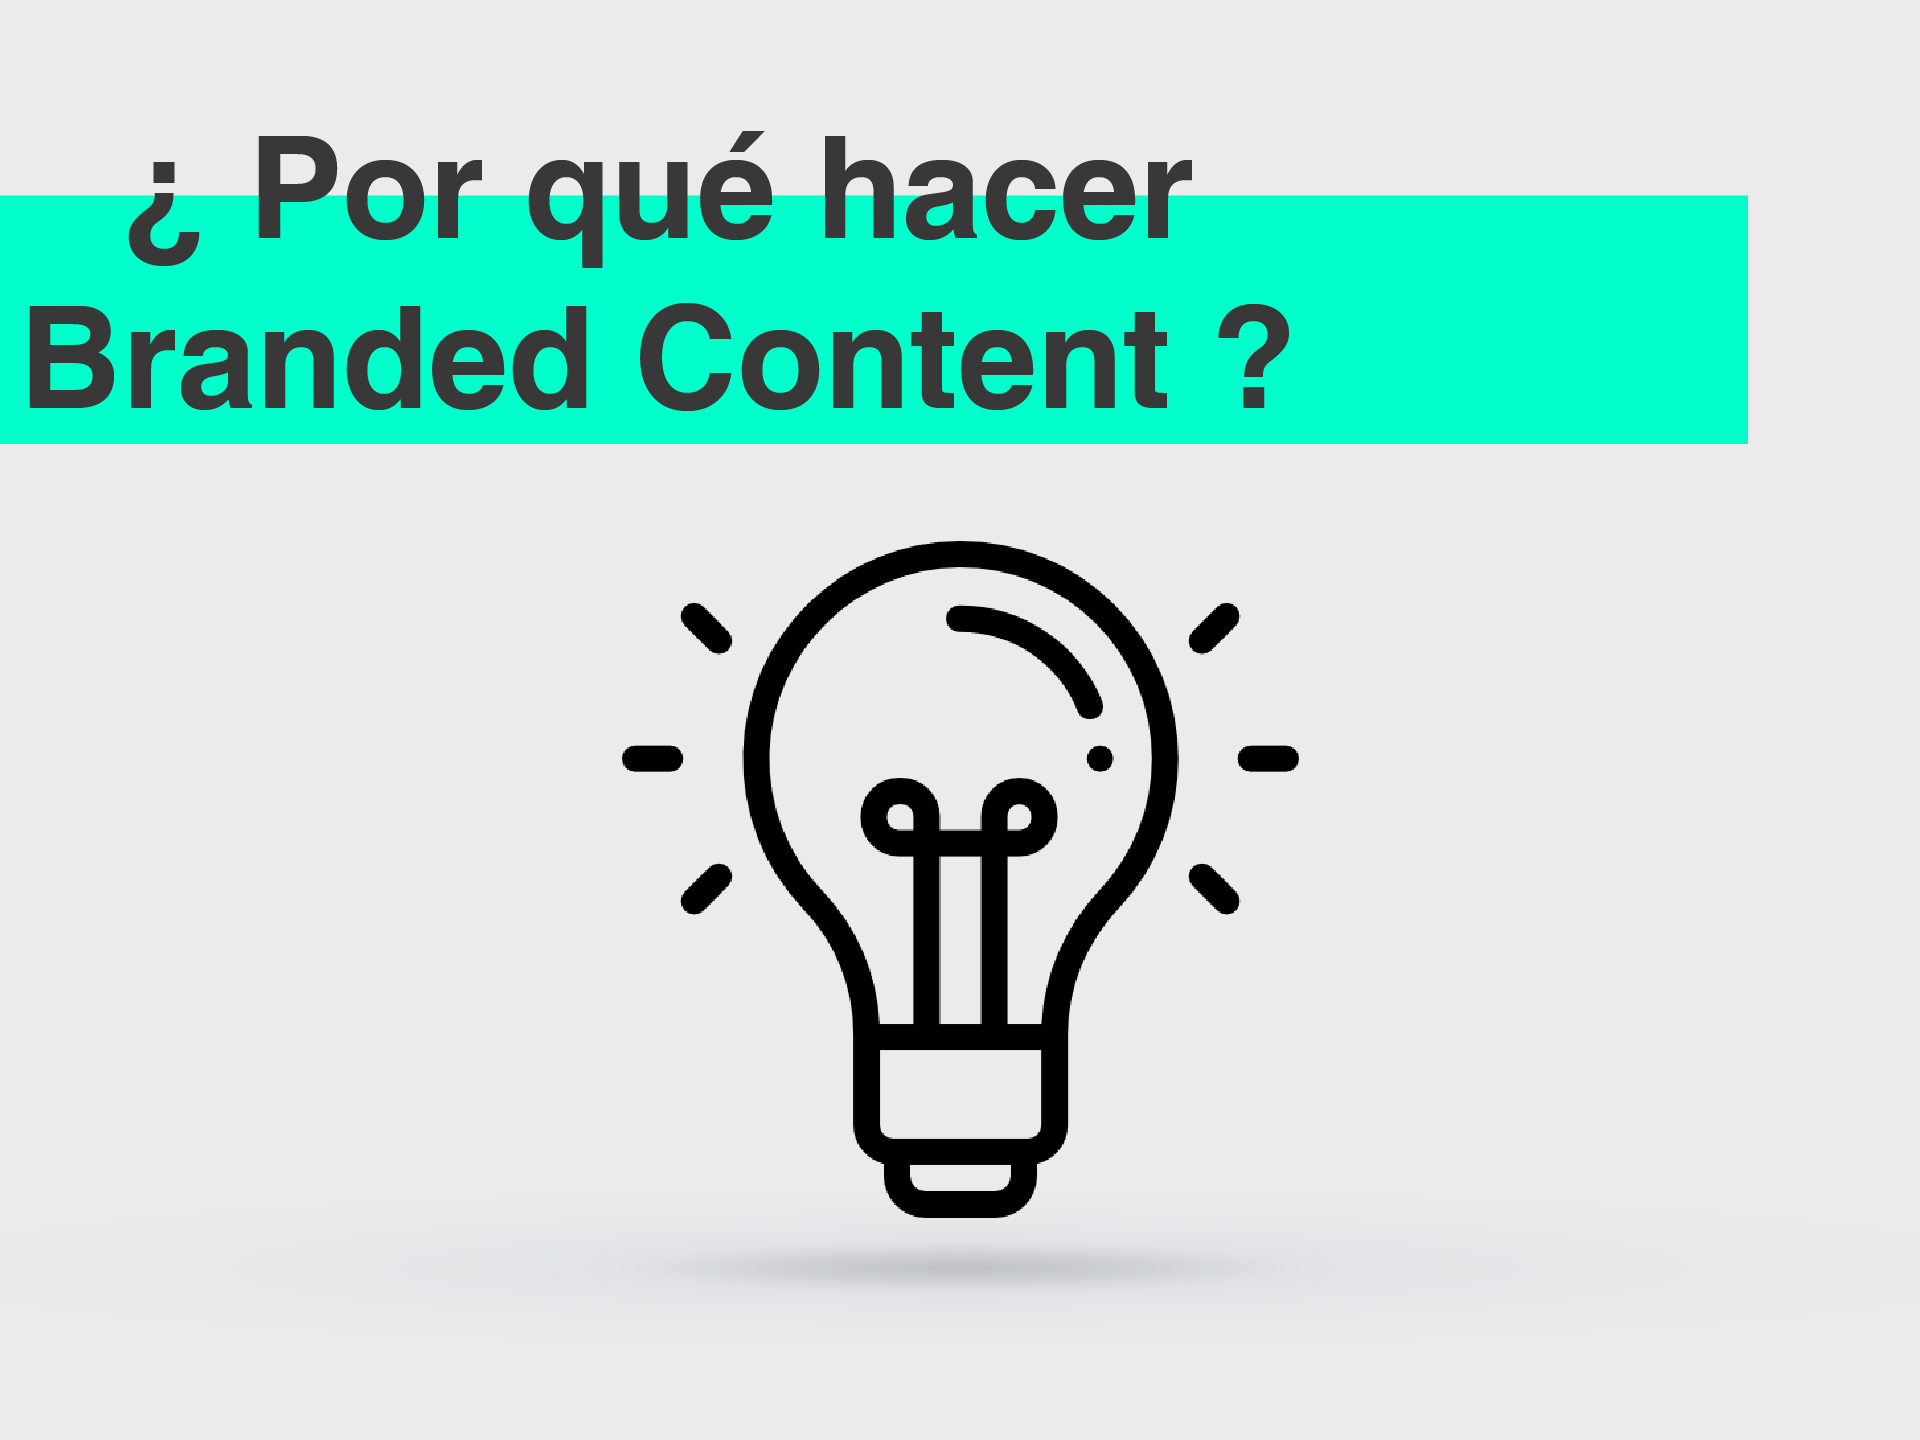 Branded Content en tu estrategia de marketing